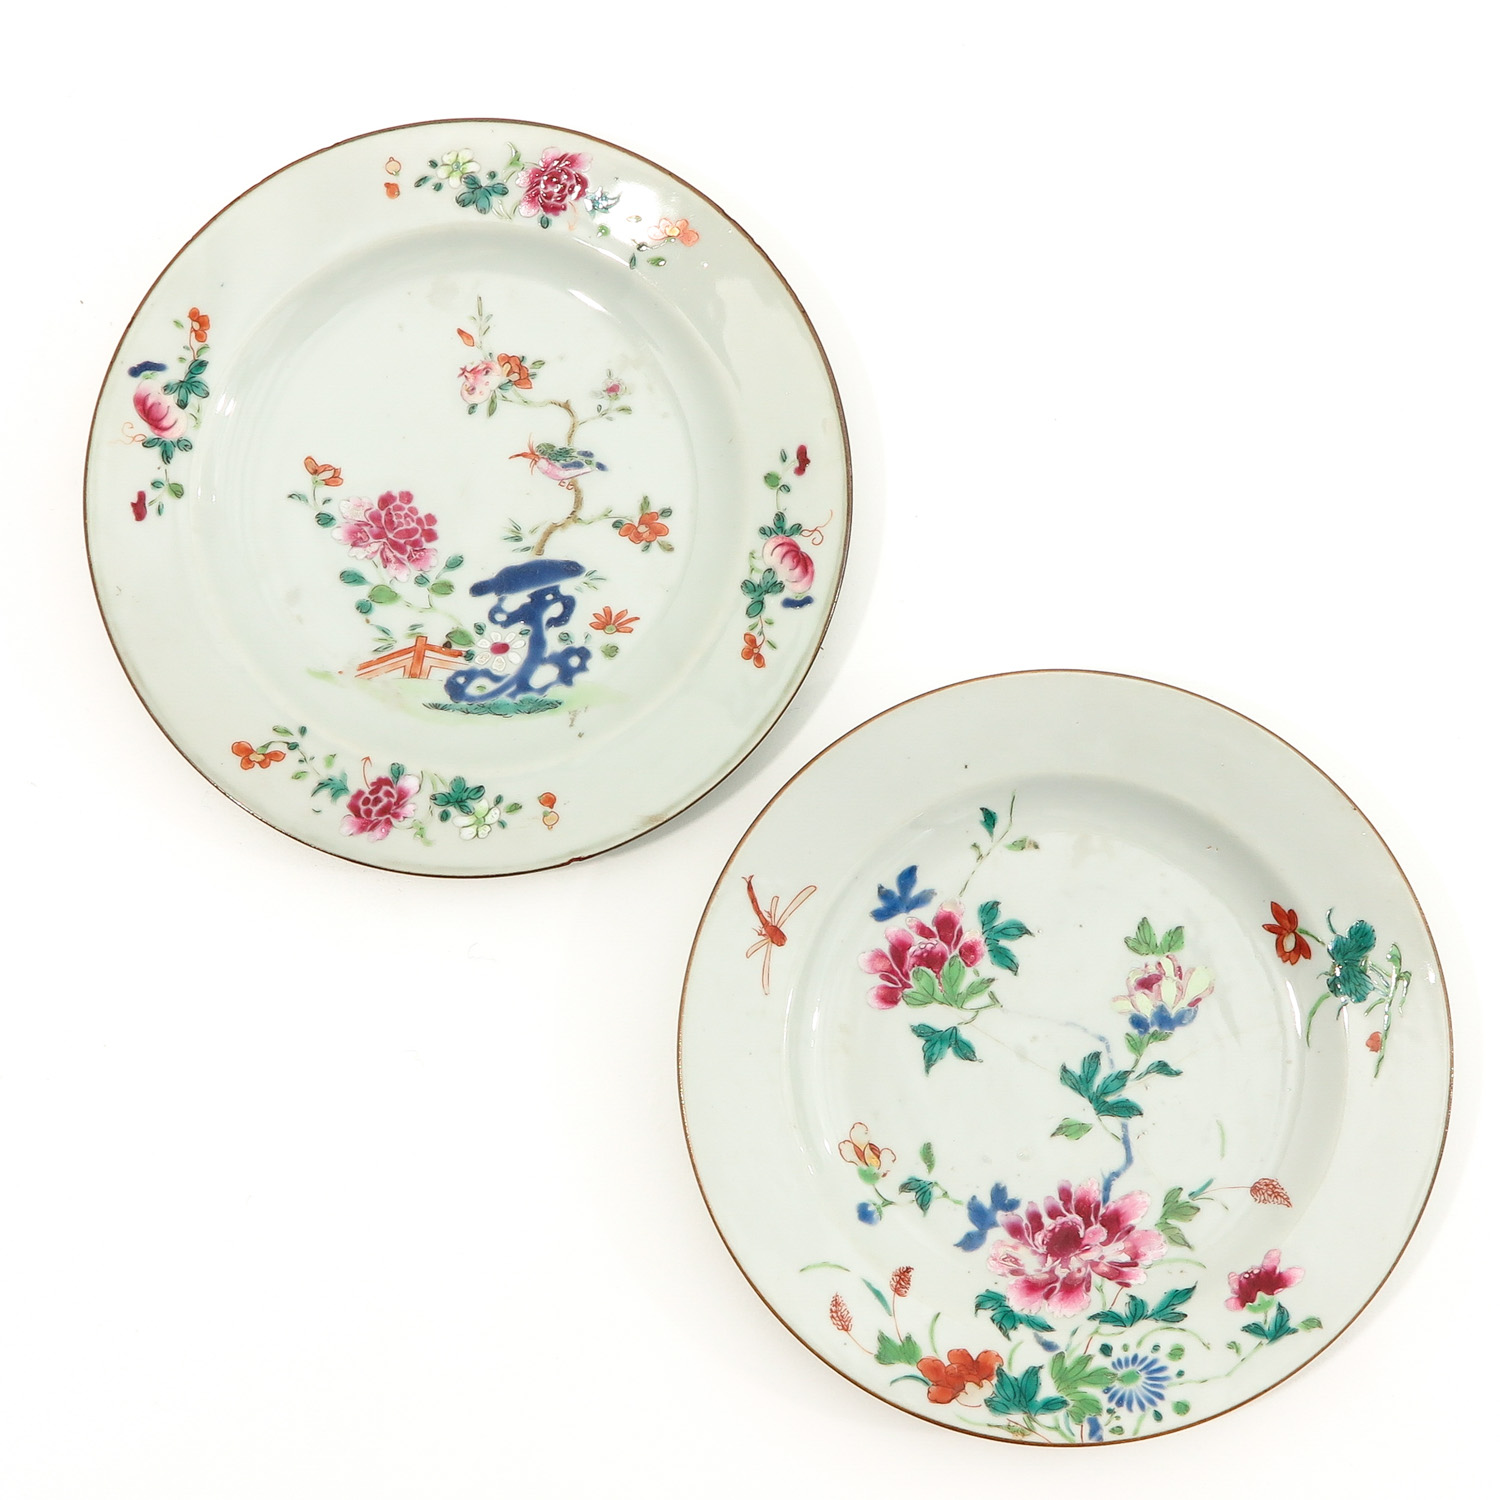 A Collection of 4 Famille Rose Plates - Image 3 of 10